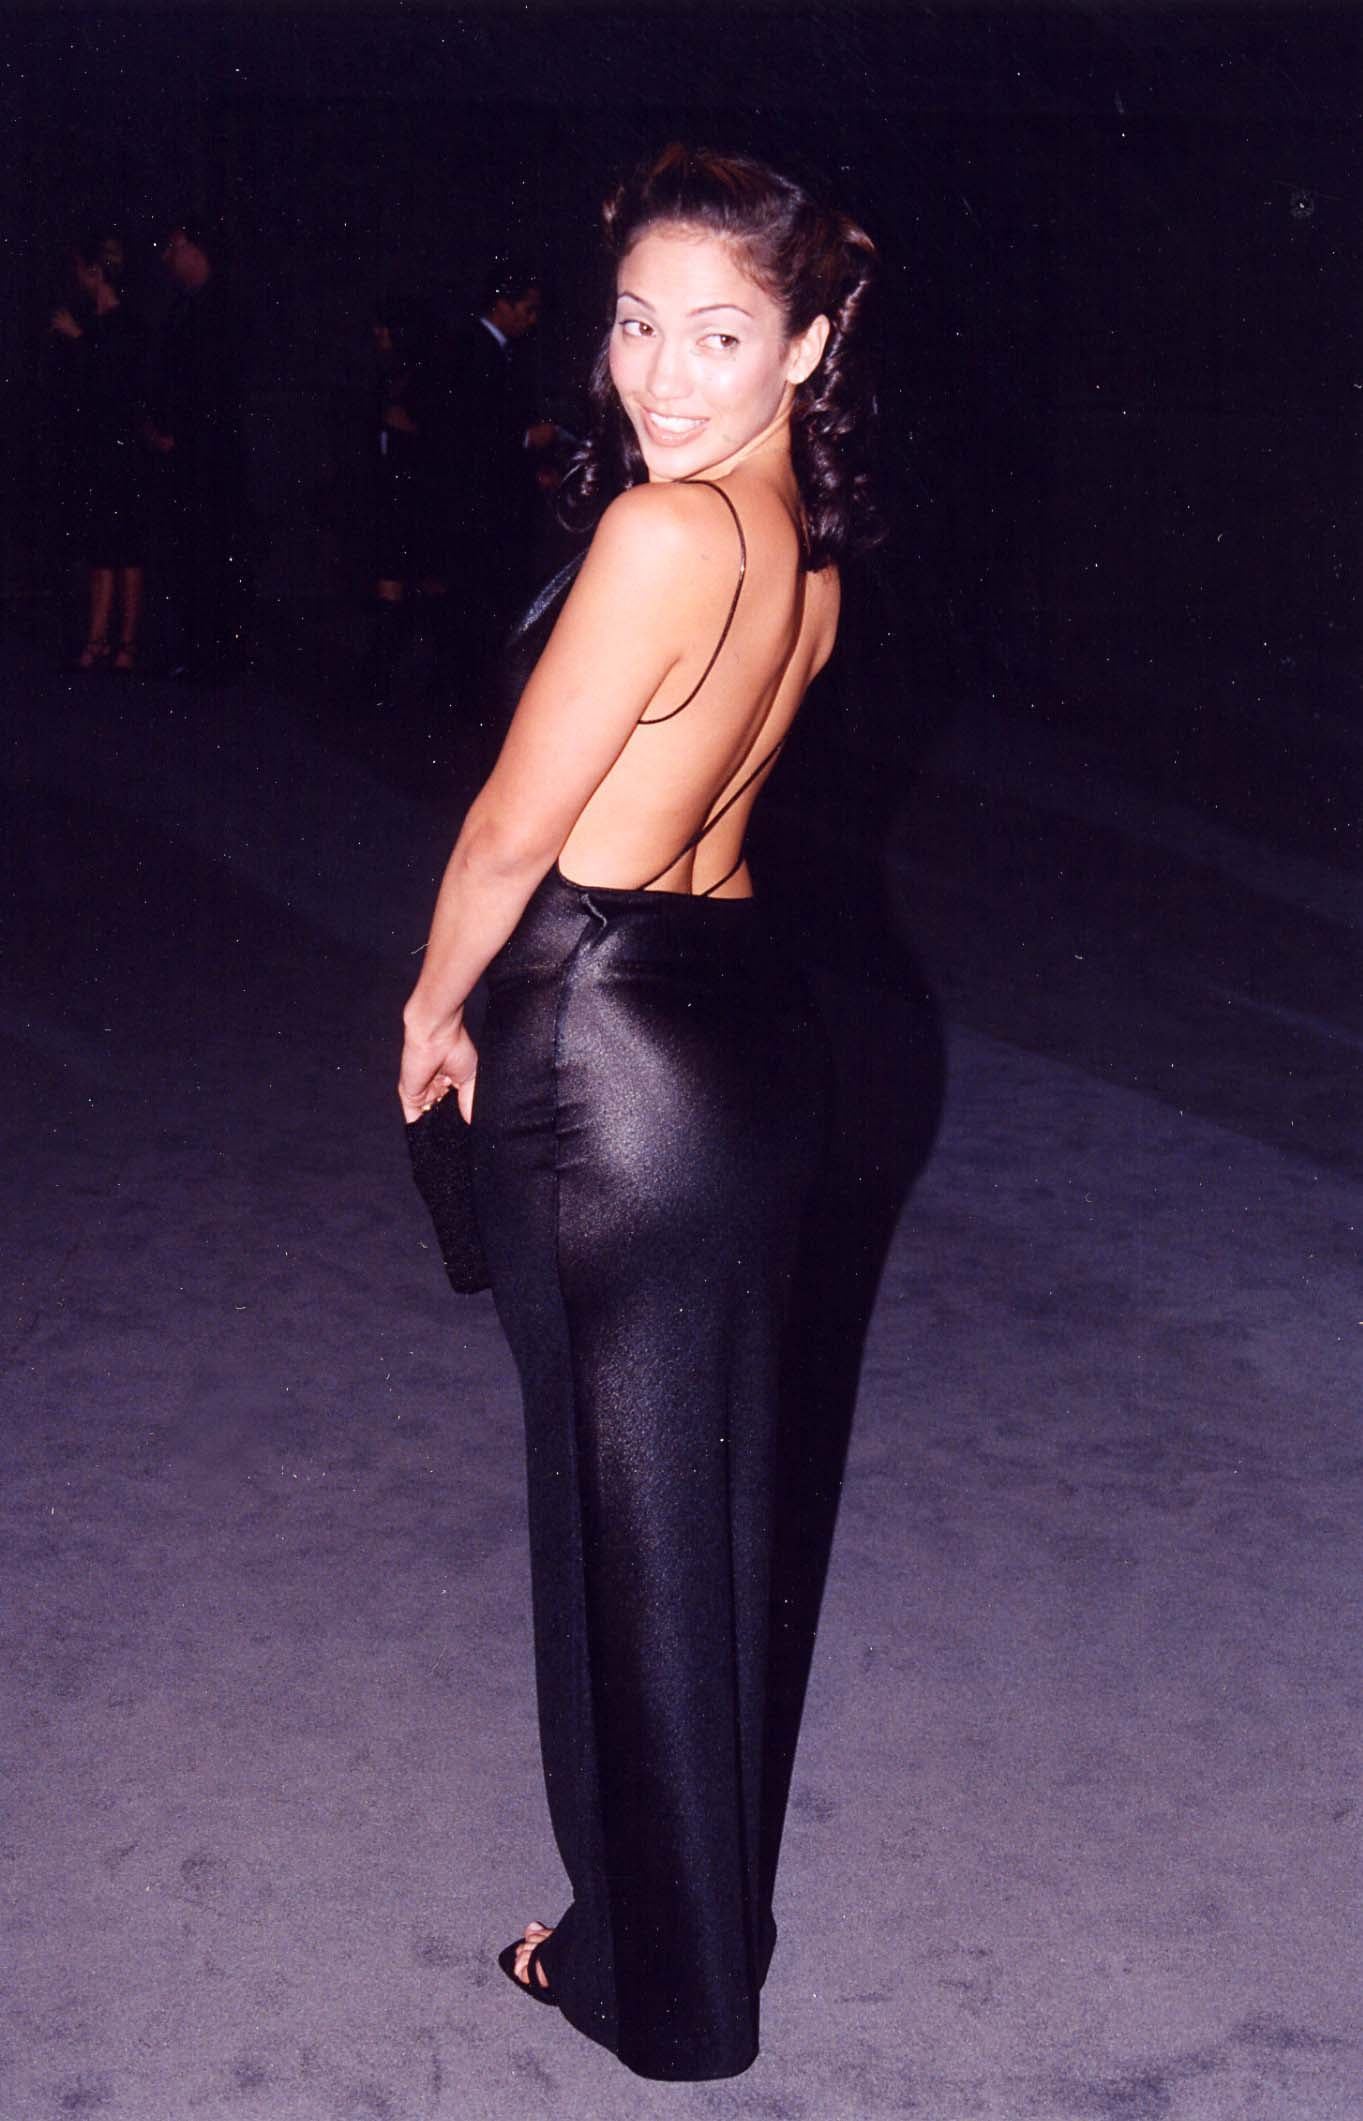 Showing off her assets in black at a '97 event.